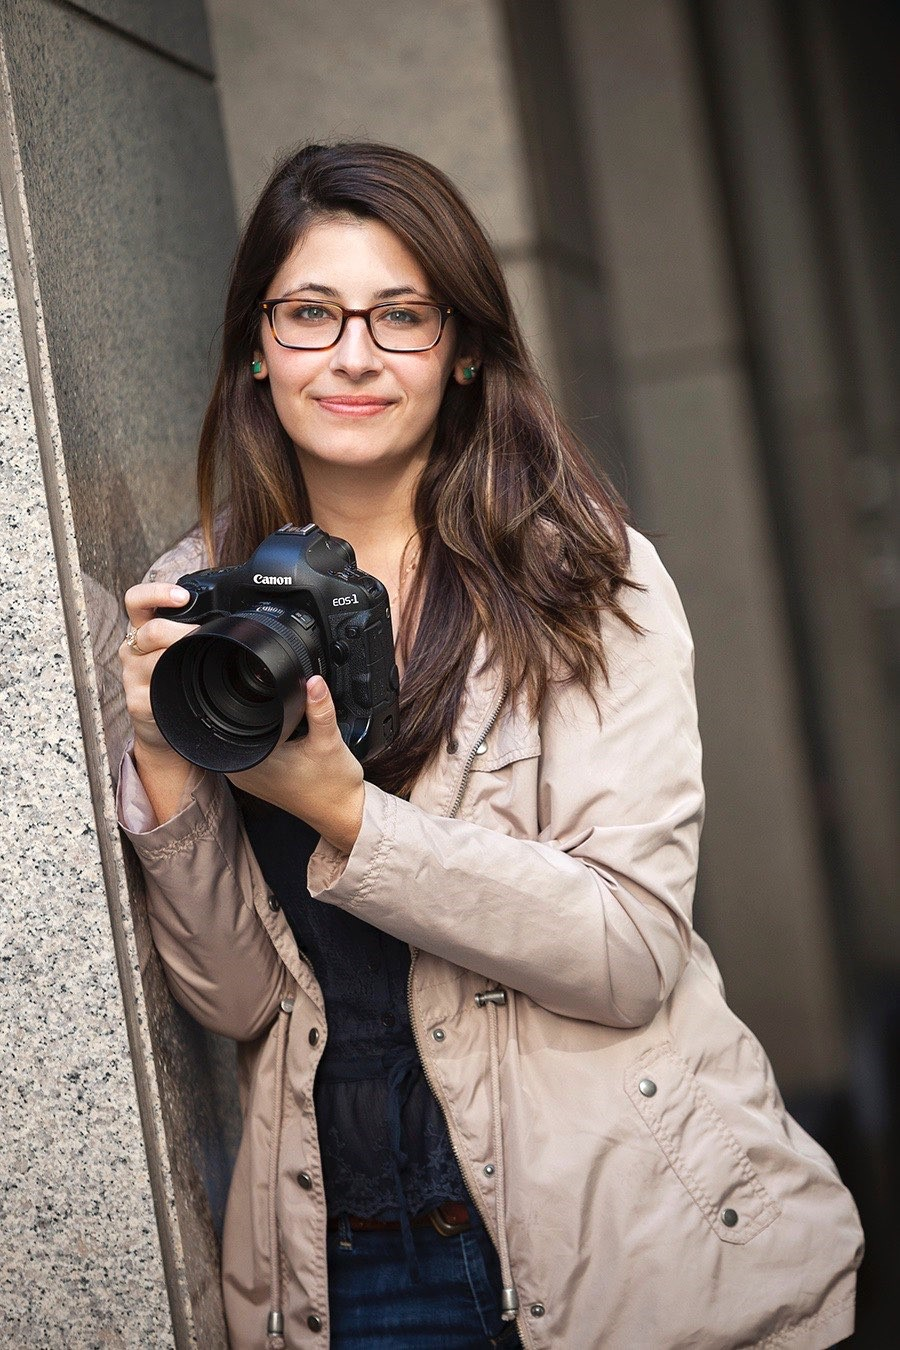 Kate Kaplan looks as good in front of a camera as she does behind it!